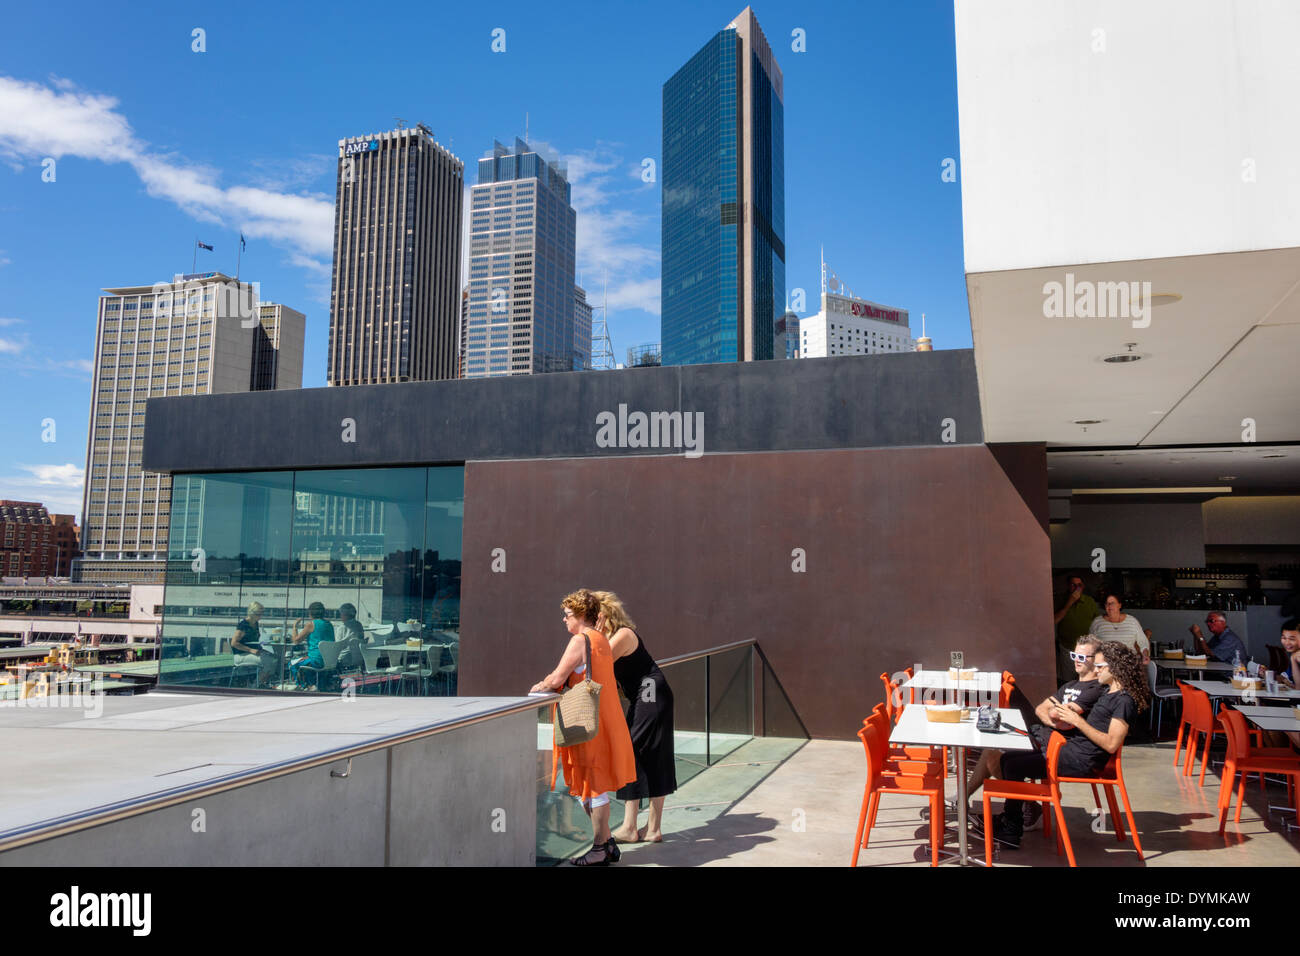 Sydney Australia NSW New South Wales West Circular Quay Museum of Contemporary Art MCA rooftop cafe restaurant CBD - Stock Image